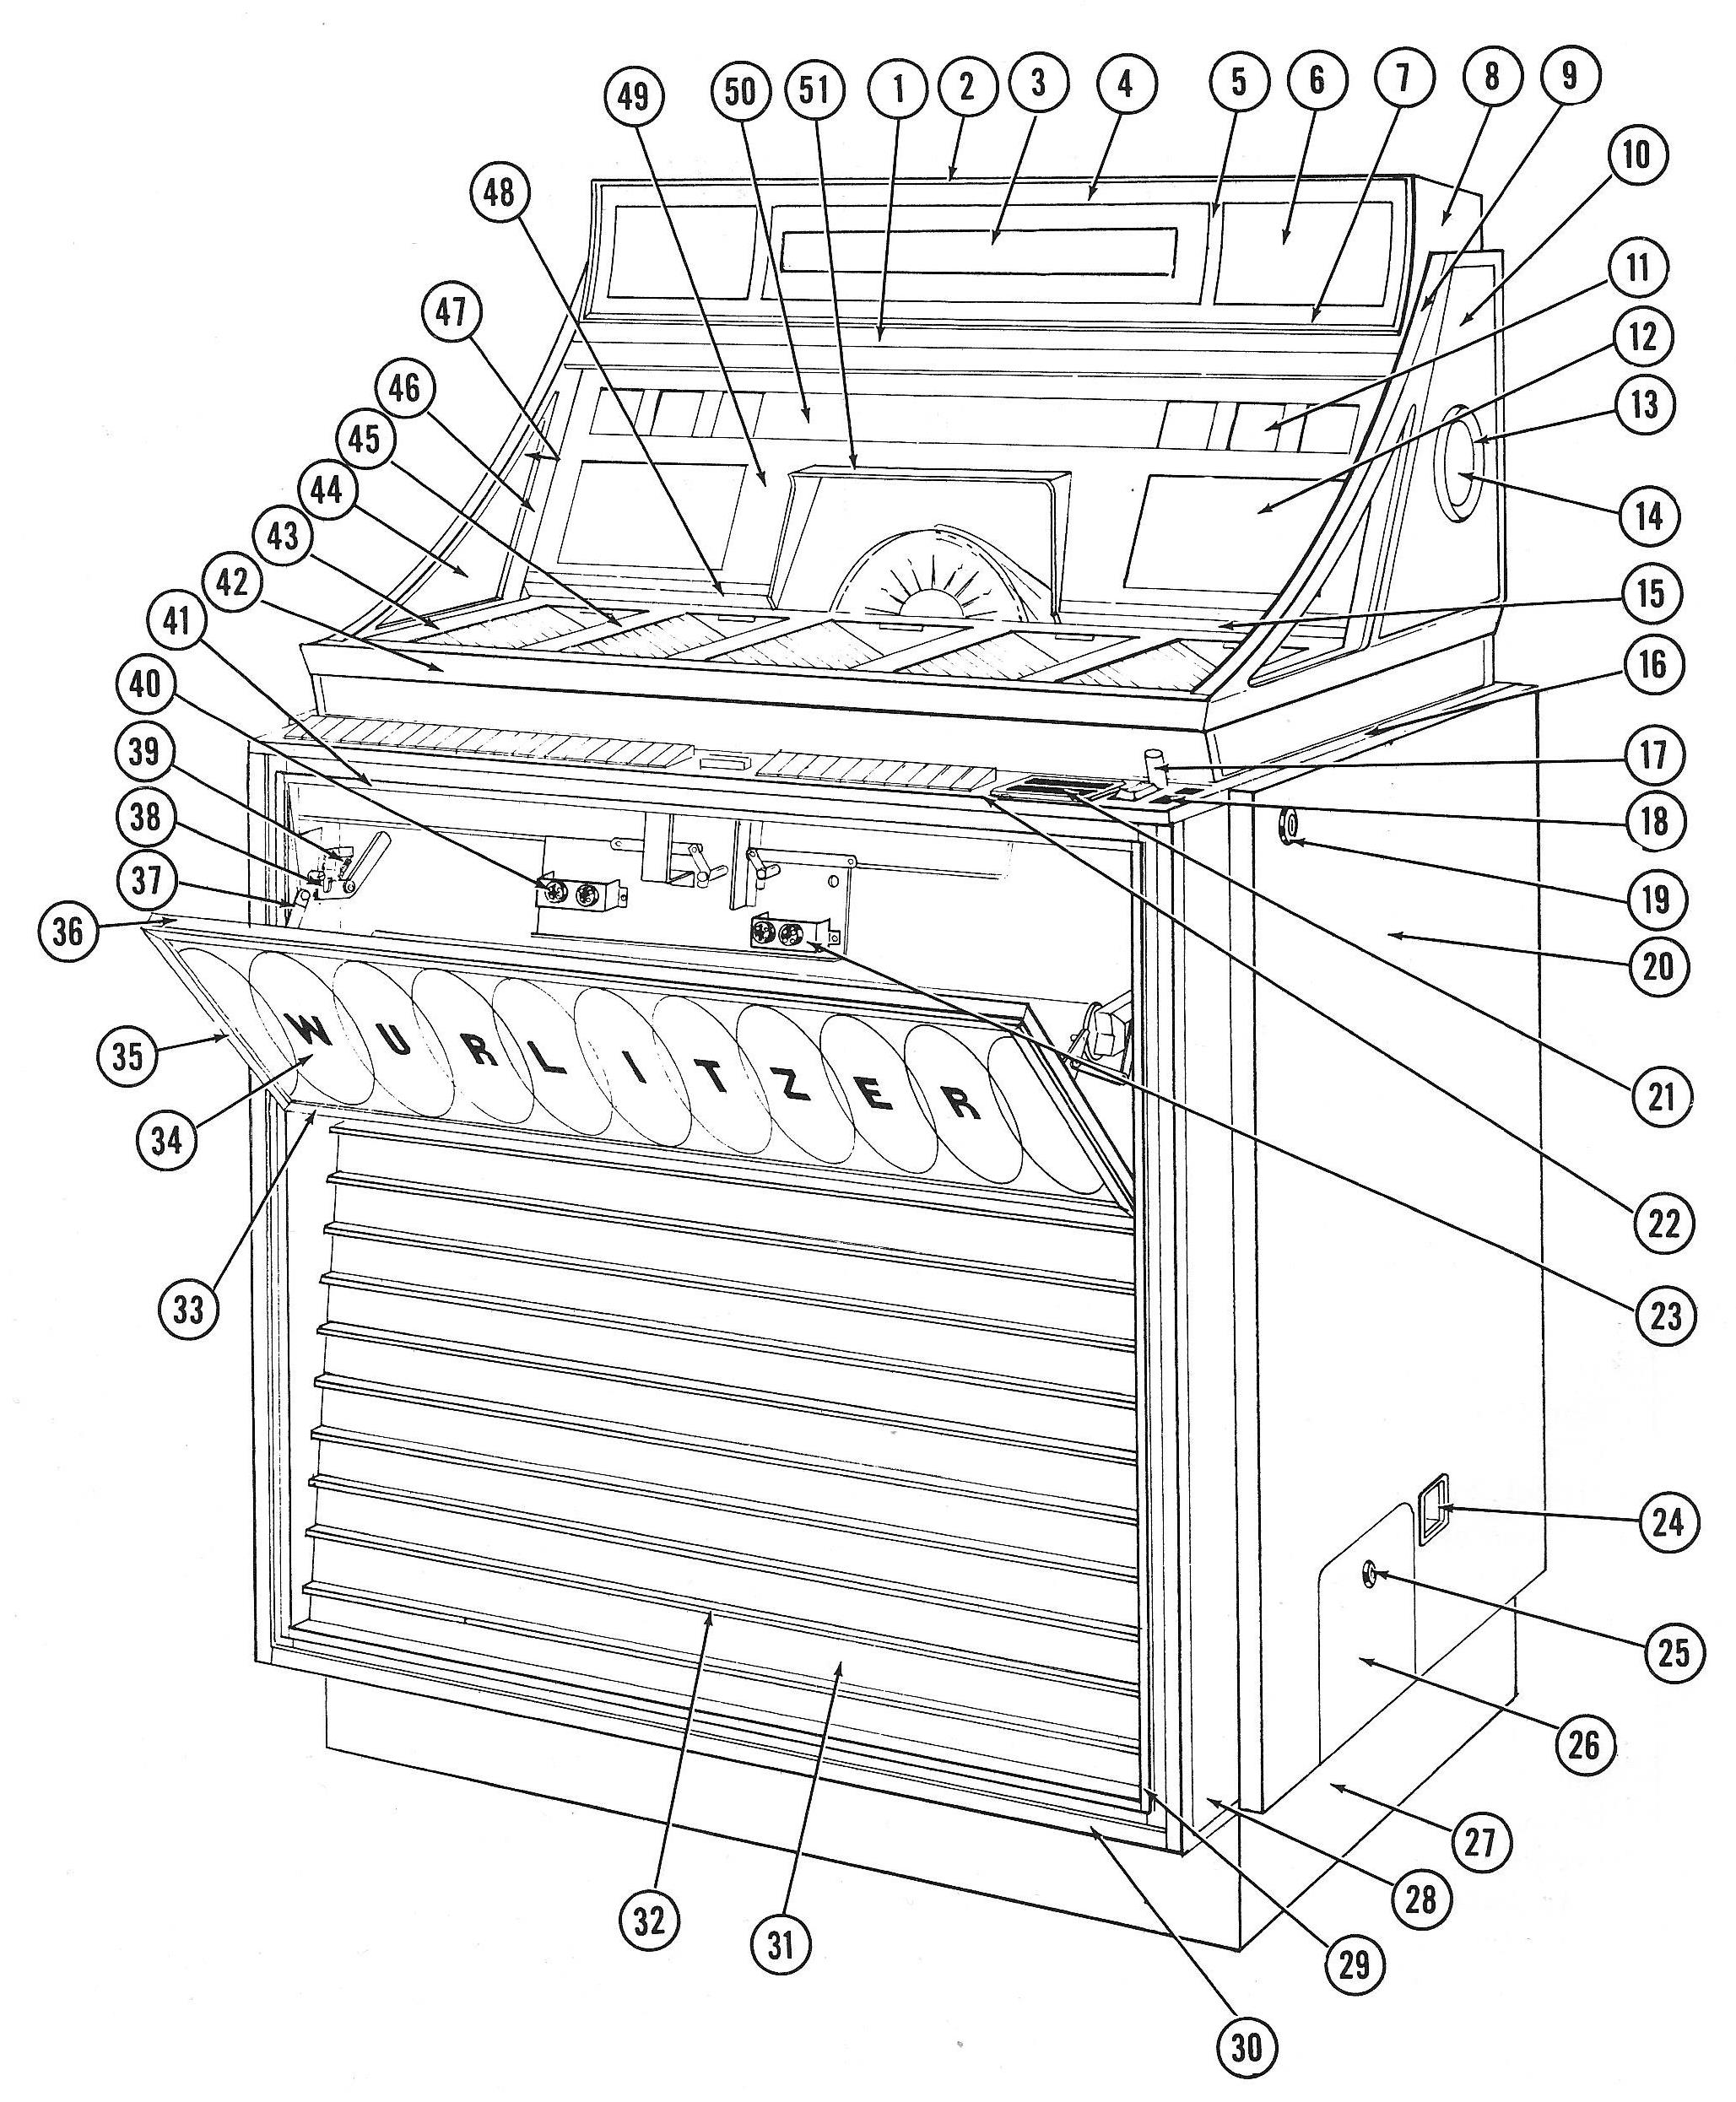 Wurlitzer Service Manual English